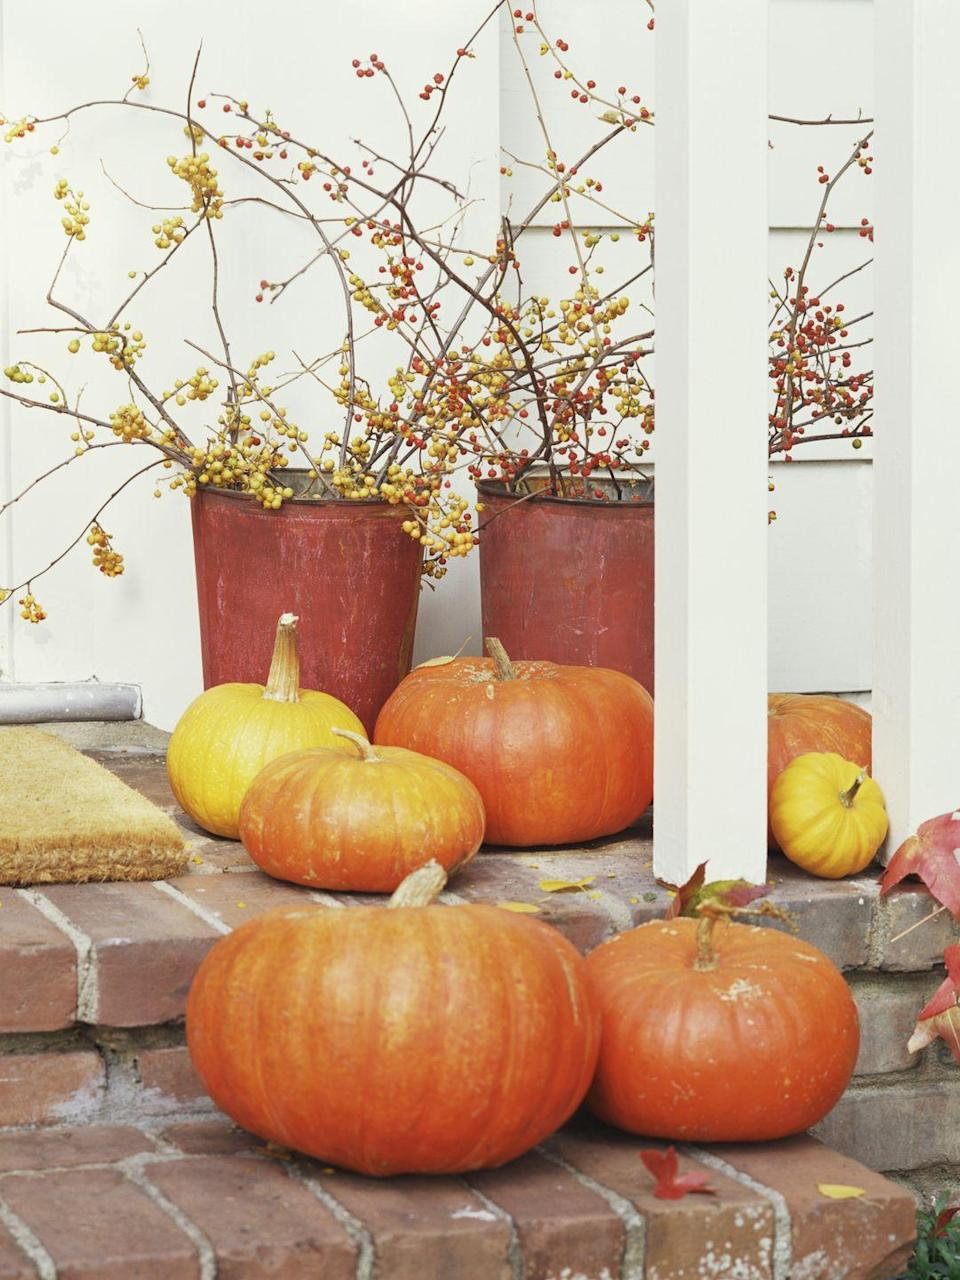 <p>Too busy to decorate for Halloween? Just set a few un-carved pumpkins on your doorstep and arrange berry branches cut from your yard inside vintage tin buckets. Done! </p>